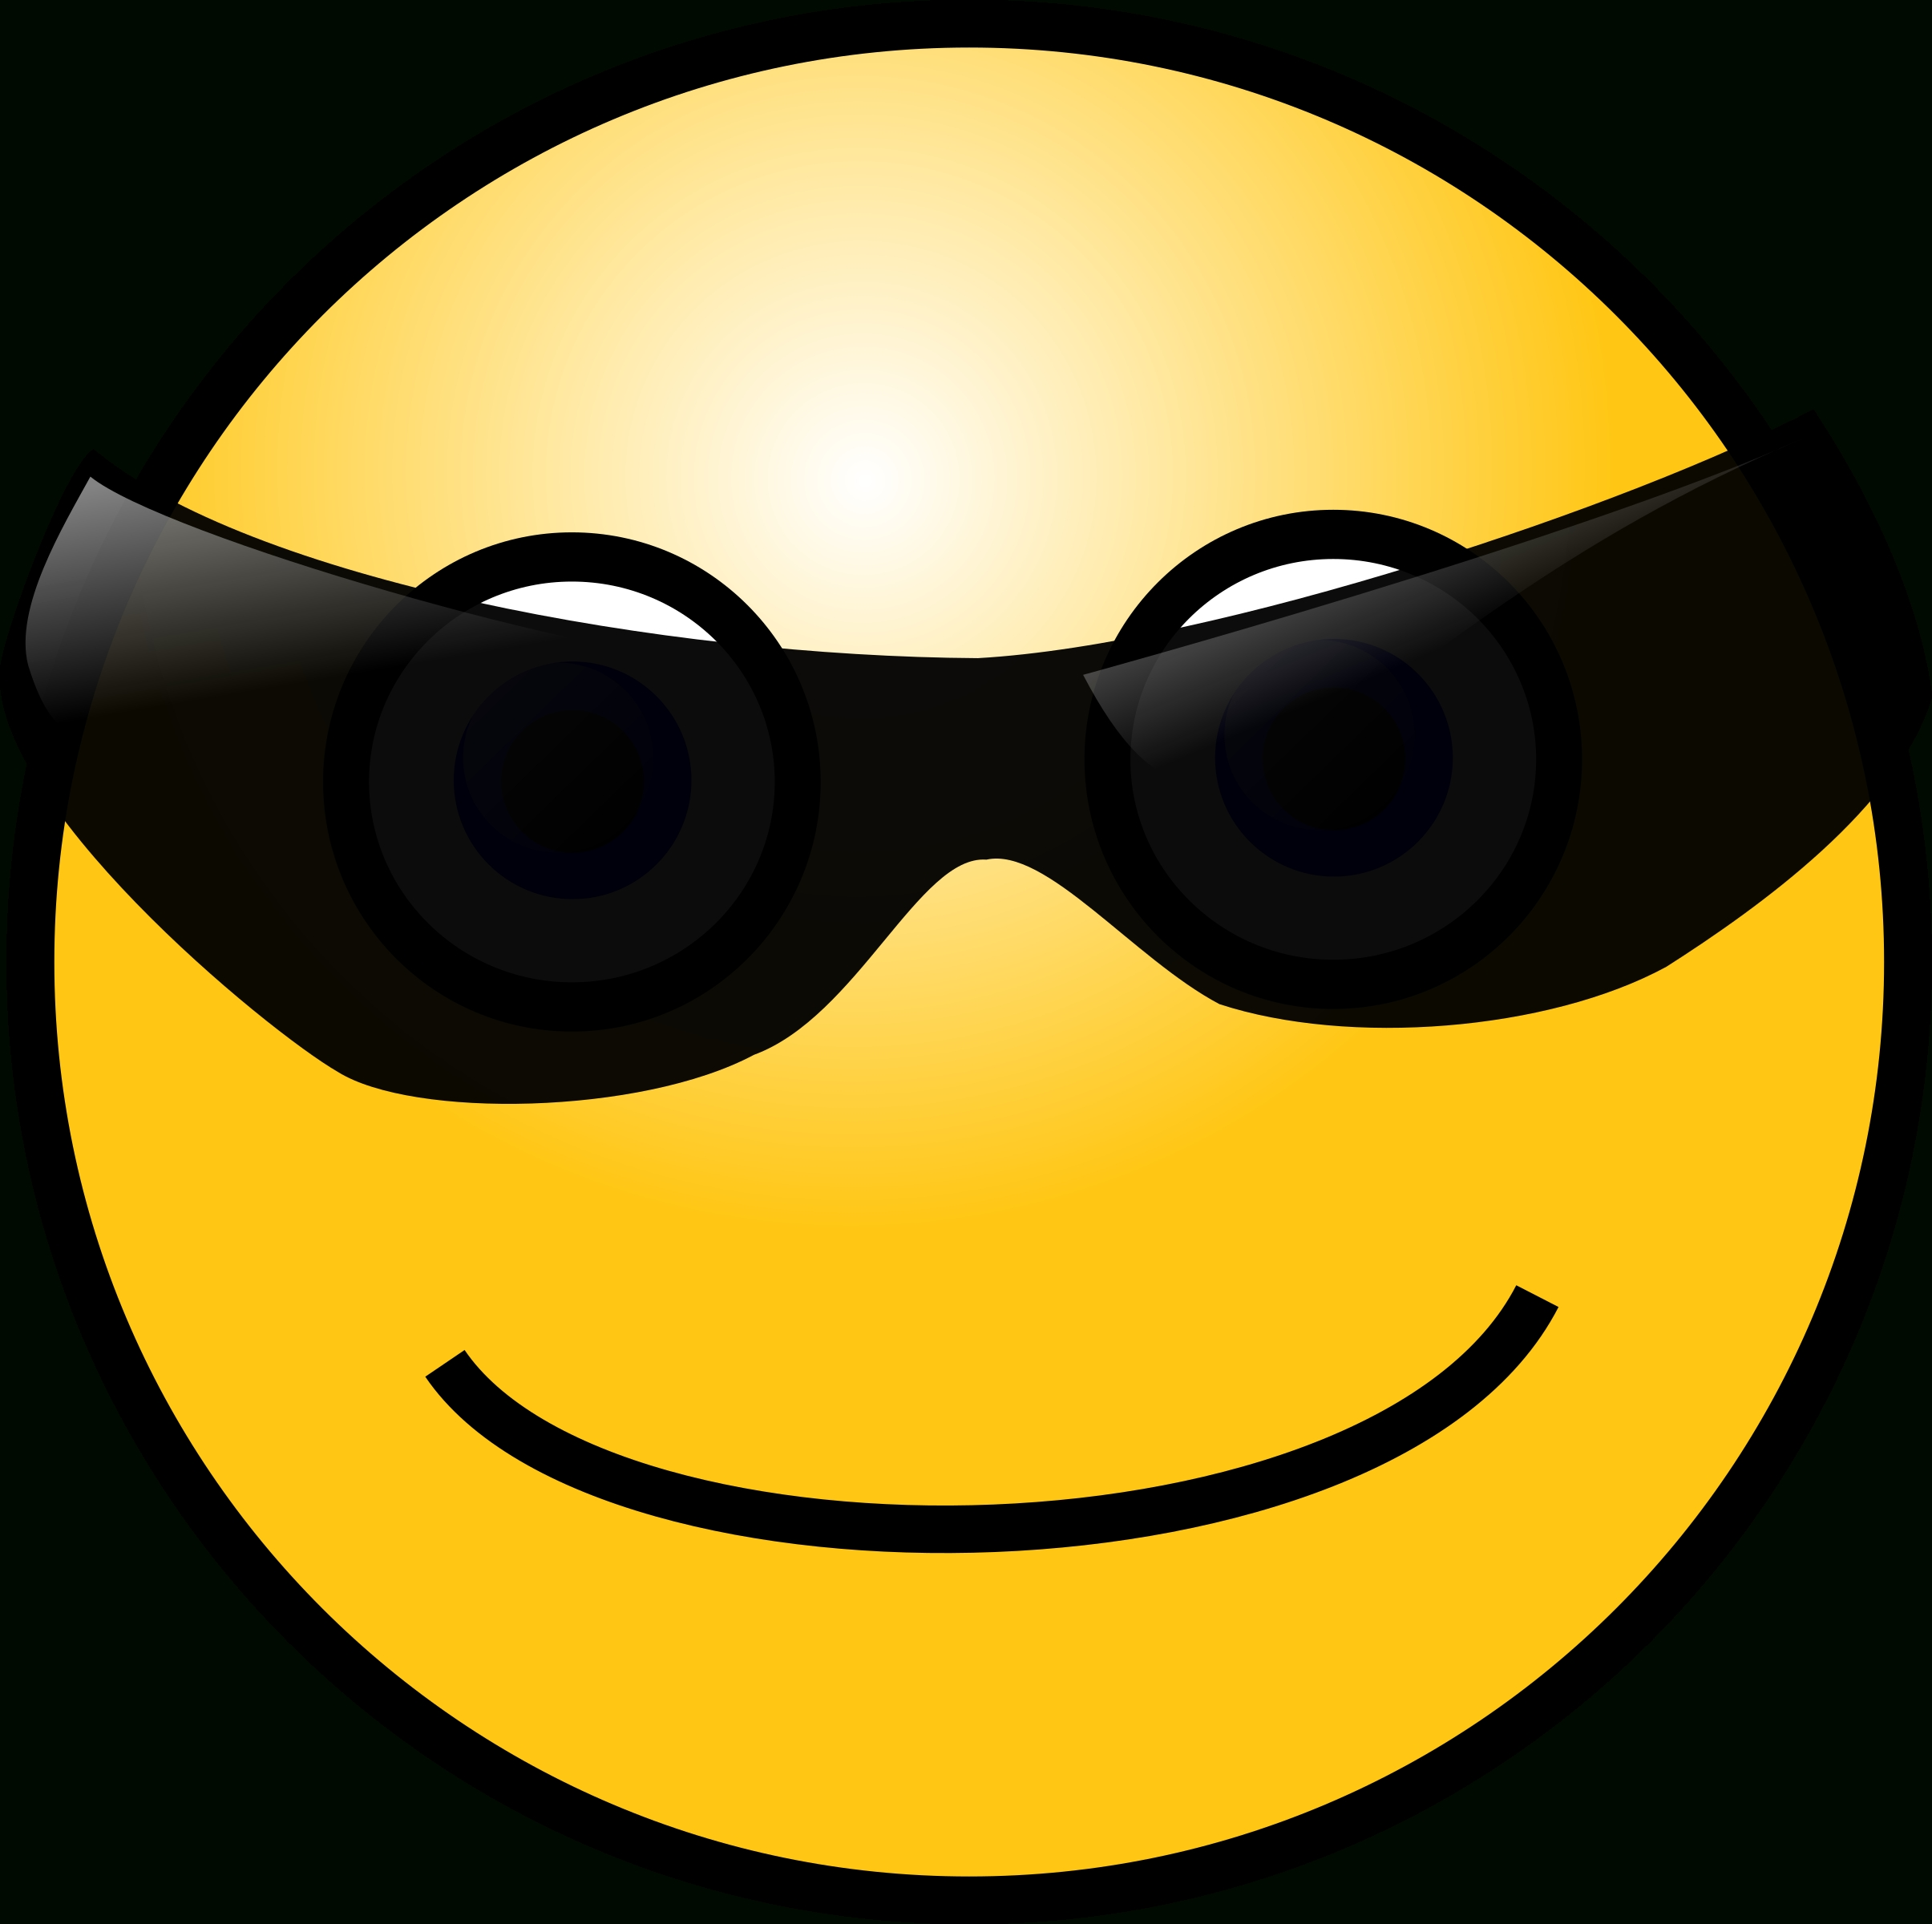 Clipart - Emoticons: Cool Face regarding Cool Smiley Face With Shades 30564